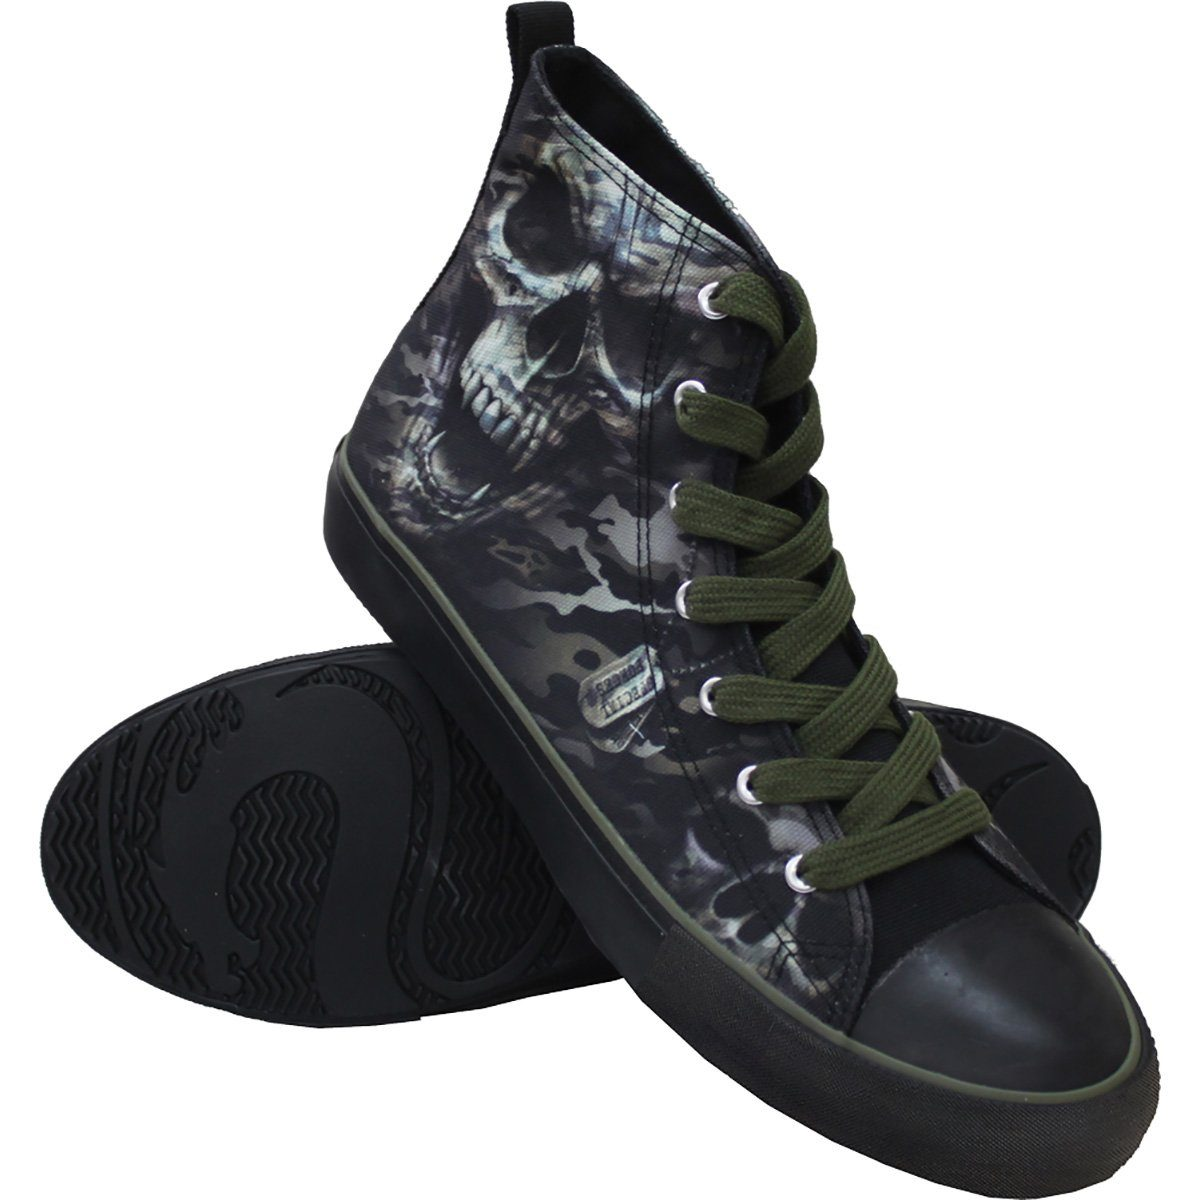 Camo Skull Men's High-Top Sneakers